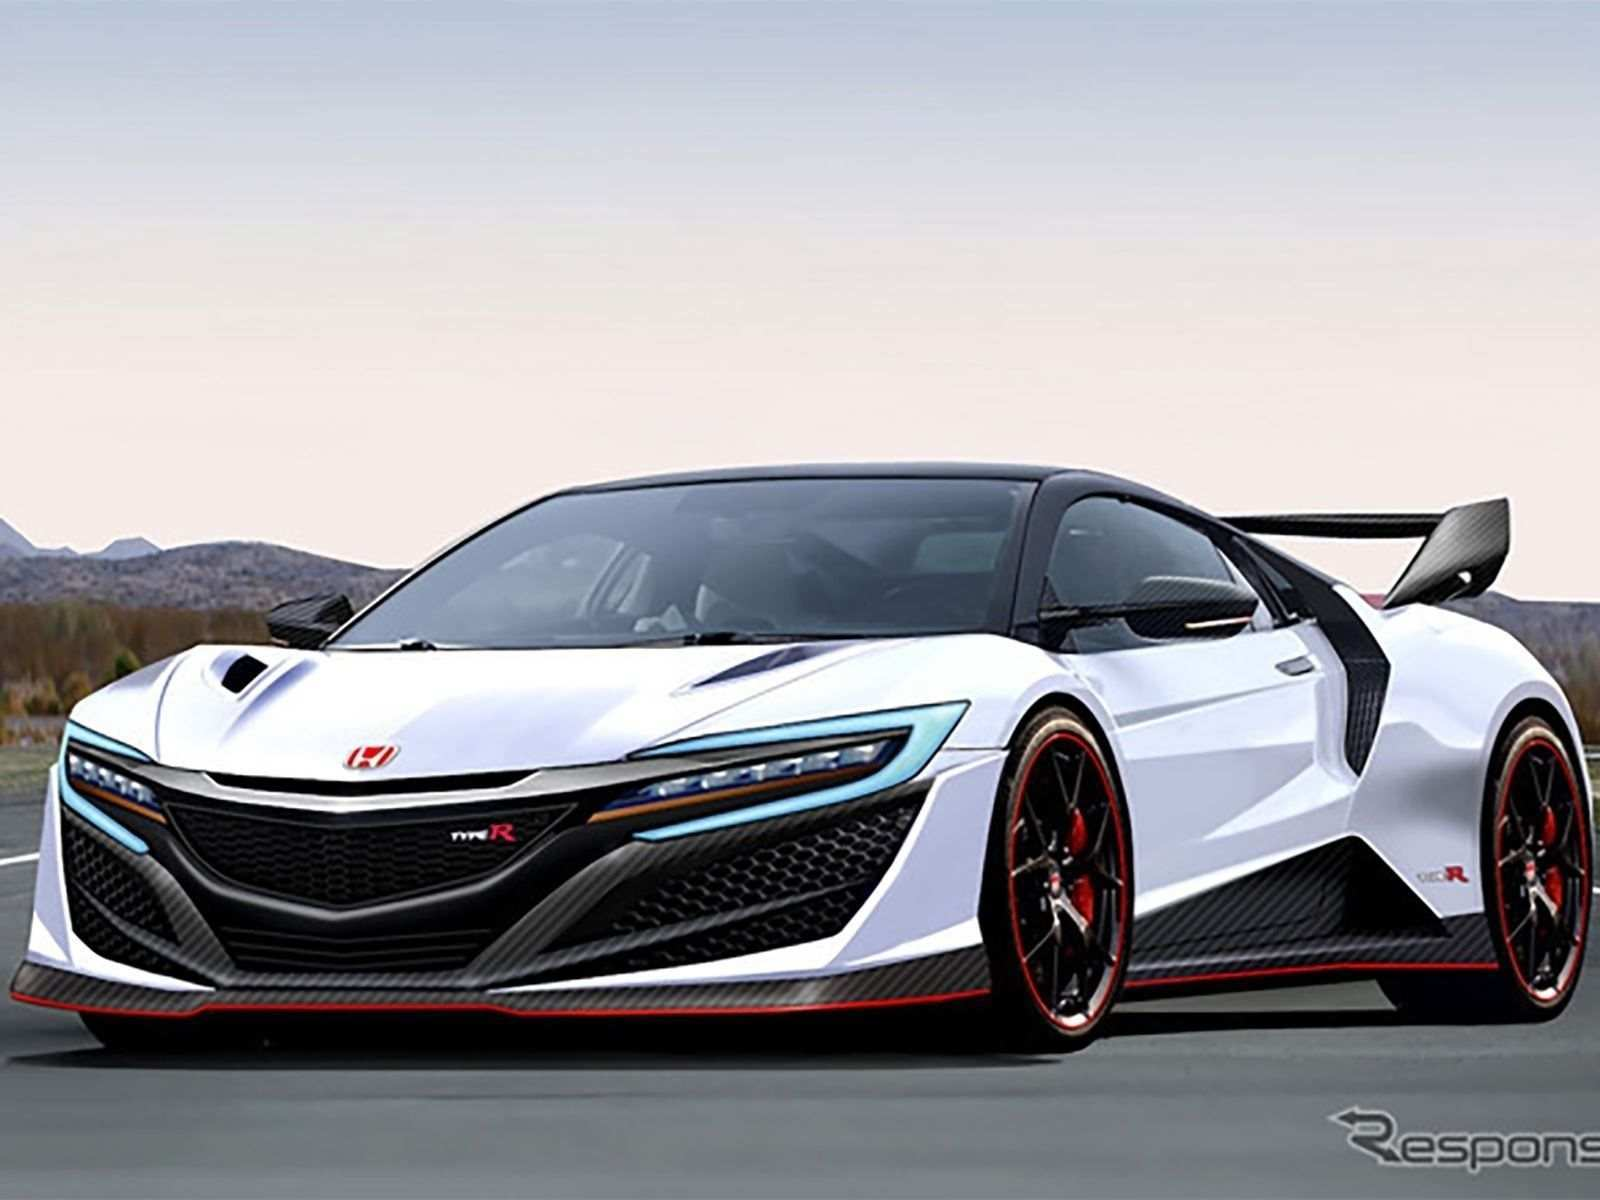 70 New 2020 Acura NSXs Rumors with 2020 Acura NSXs